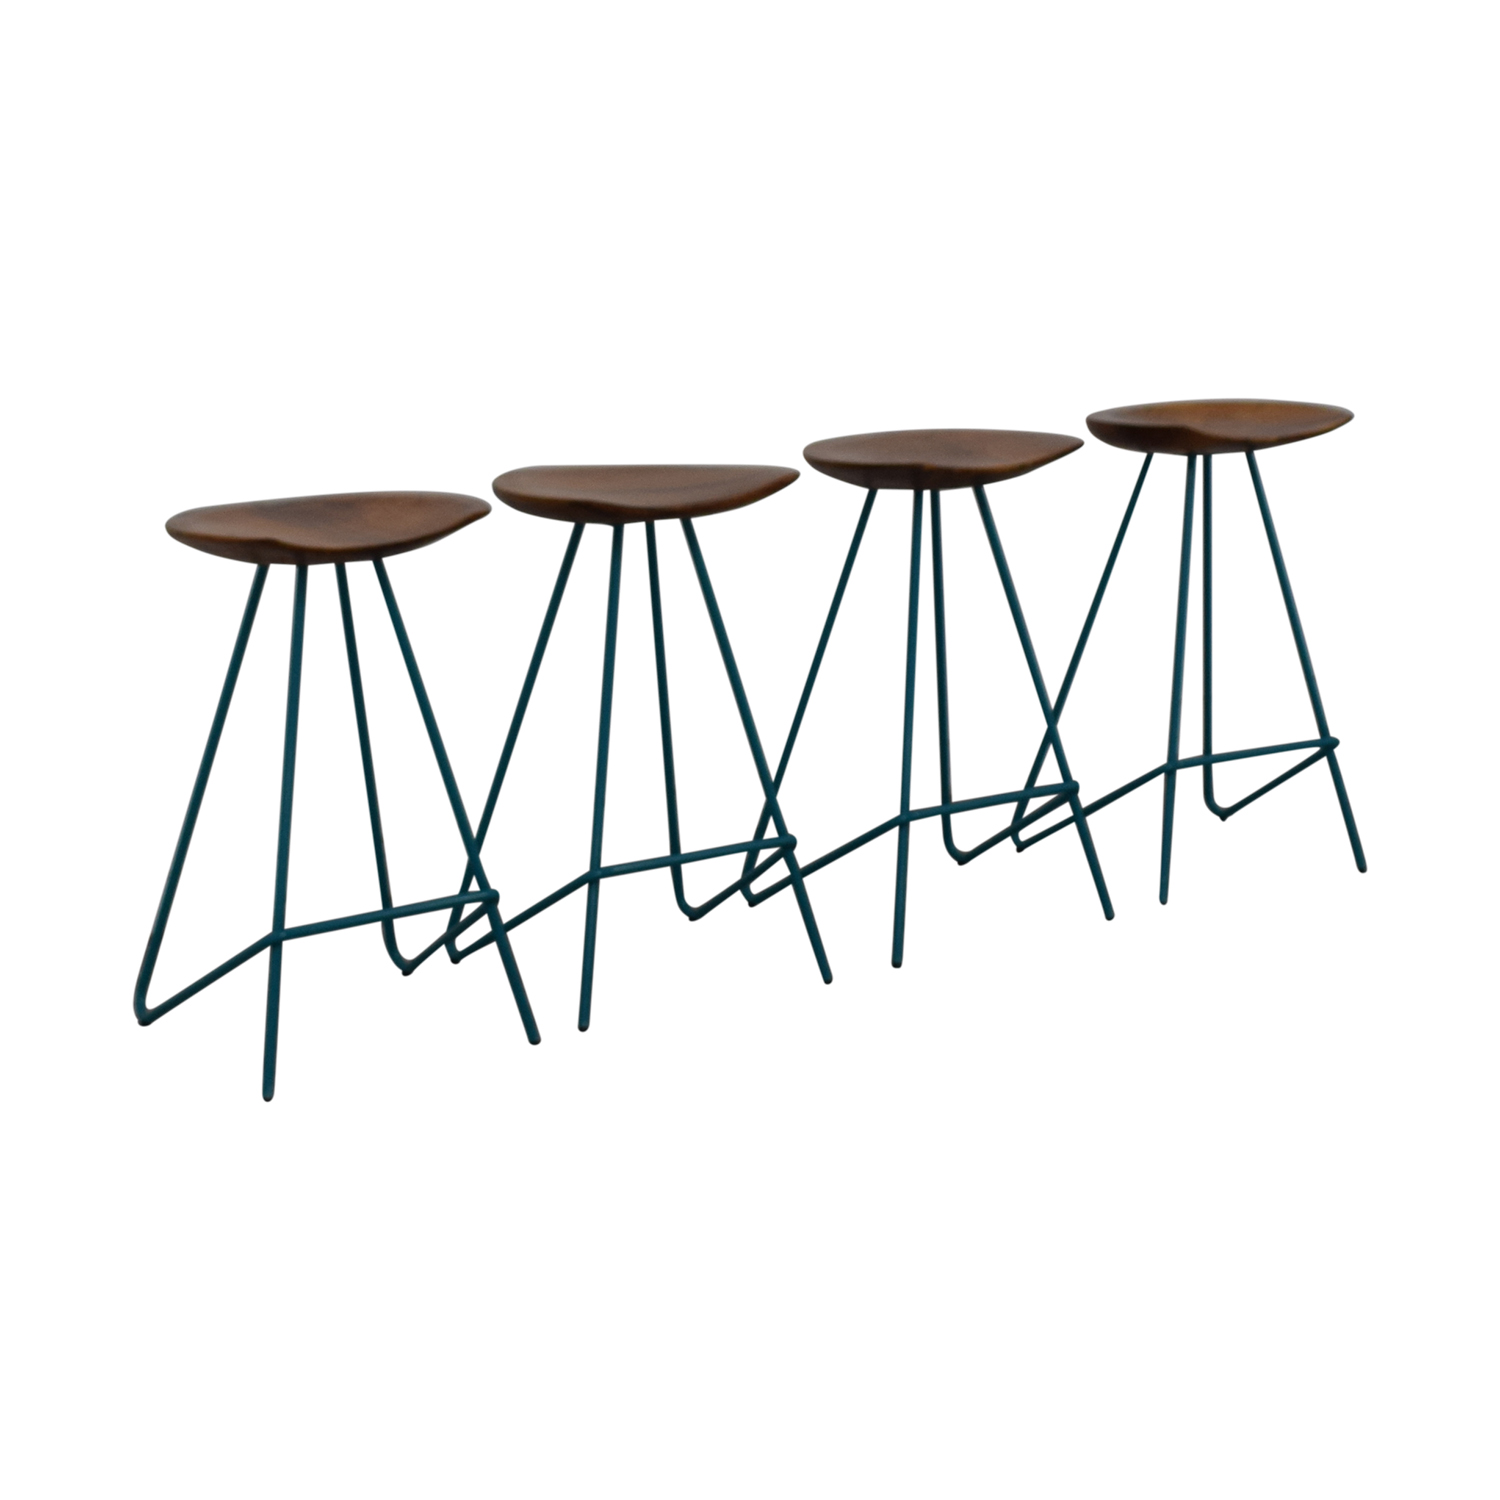 shop From the Source Teal Perch Bar Stools From the Source